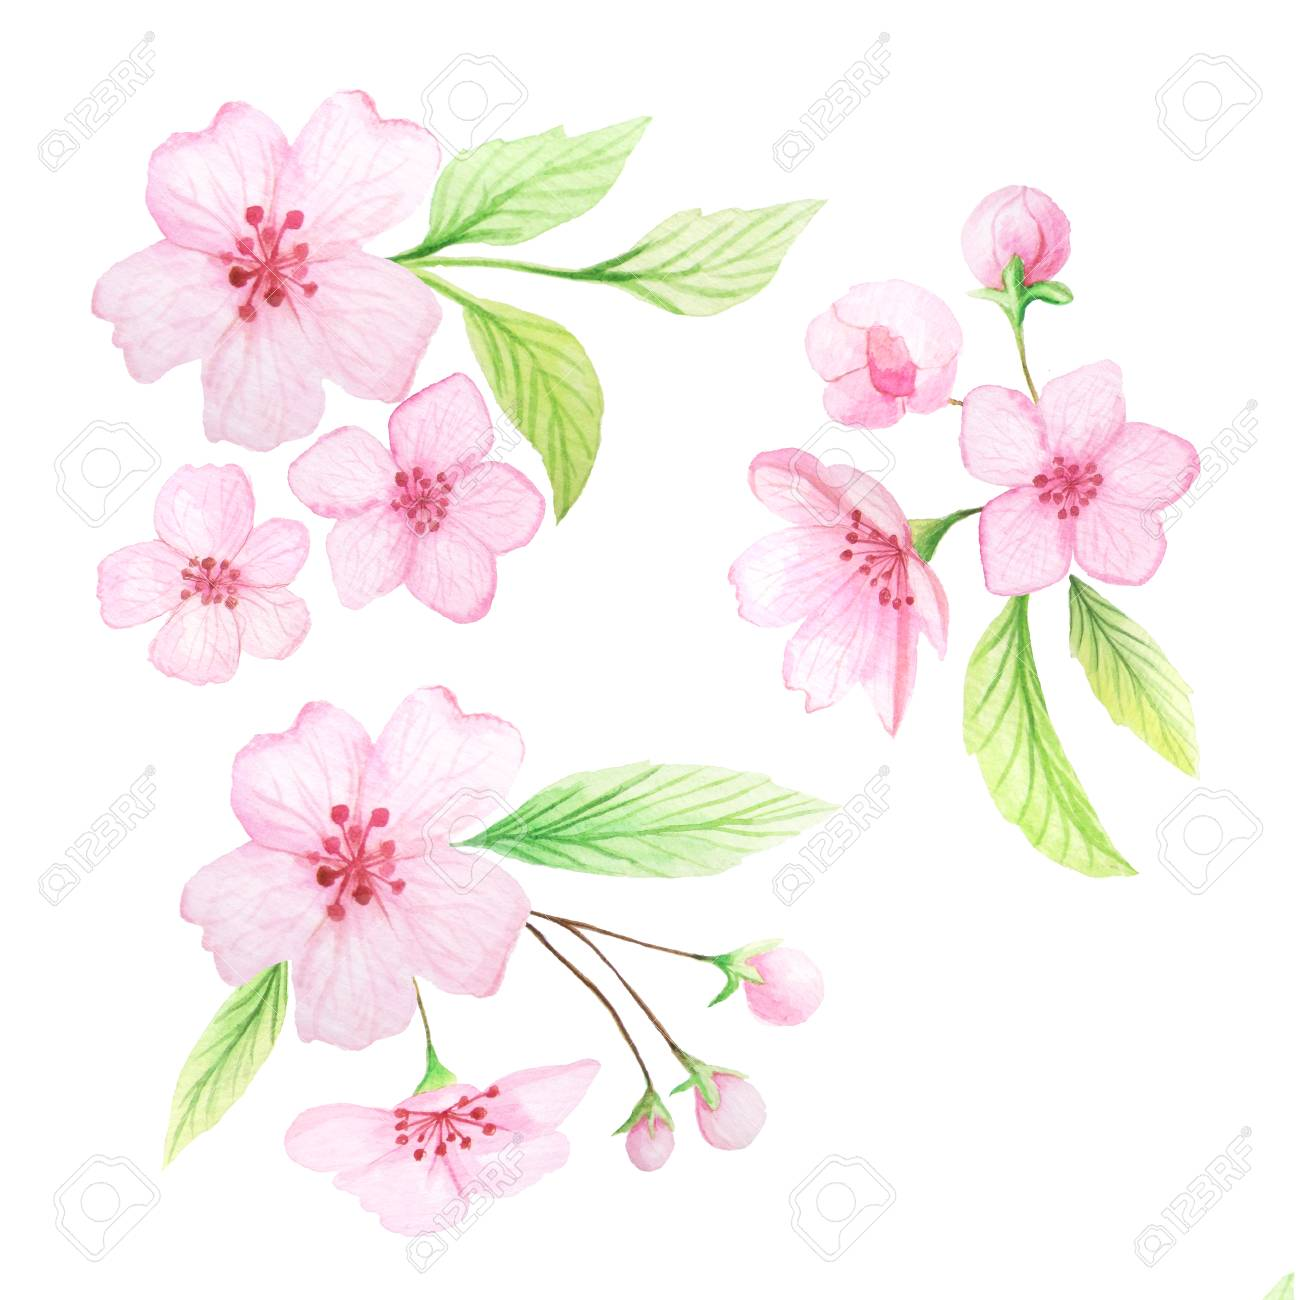 Set Of Hand Painted Watercolor Cherry Flowers And Leaves Spring